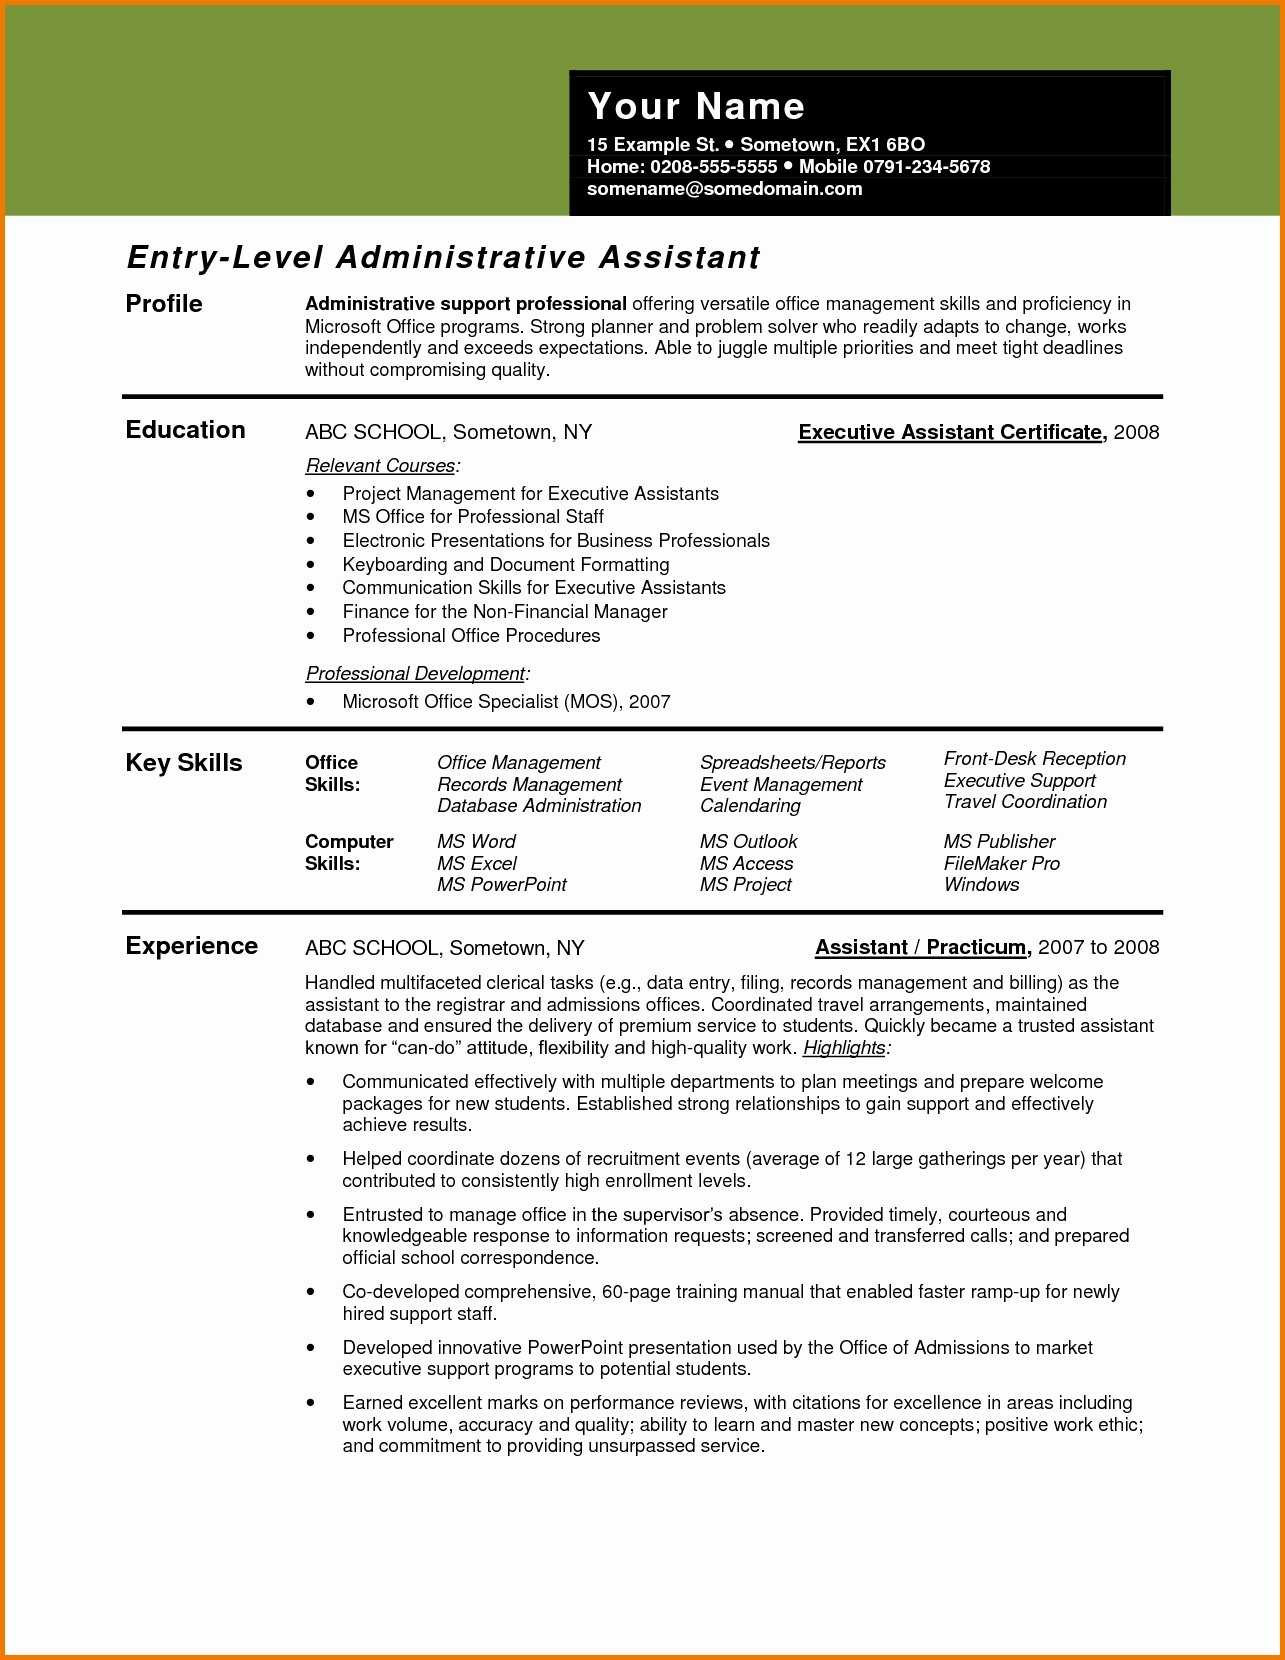 Uconn Resume Template - Objective for Resume In Administrative assistant Inspirational New